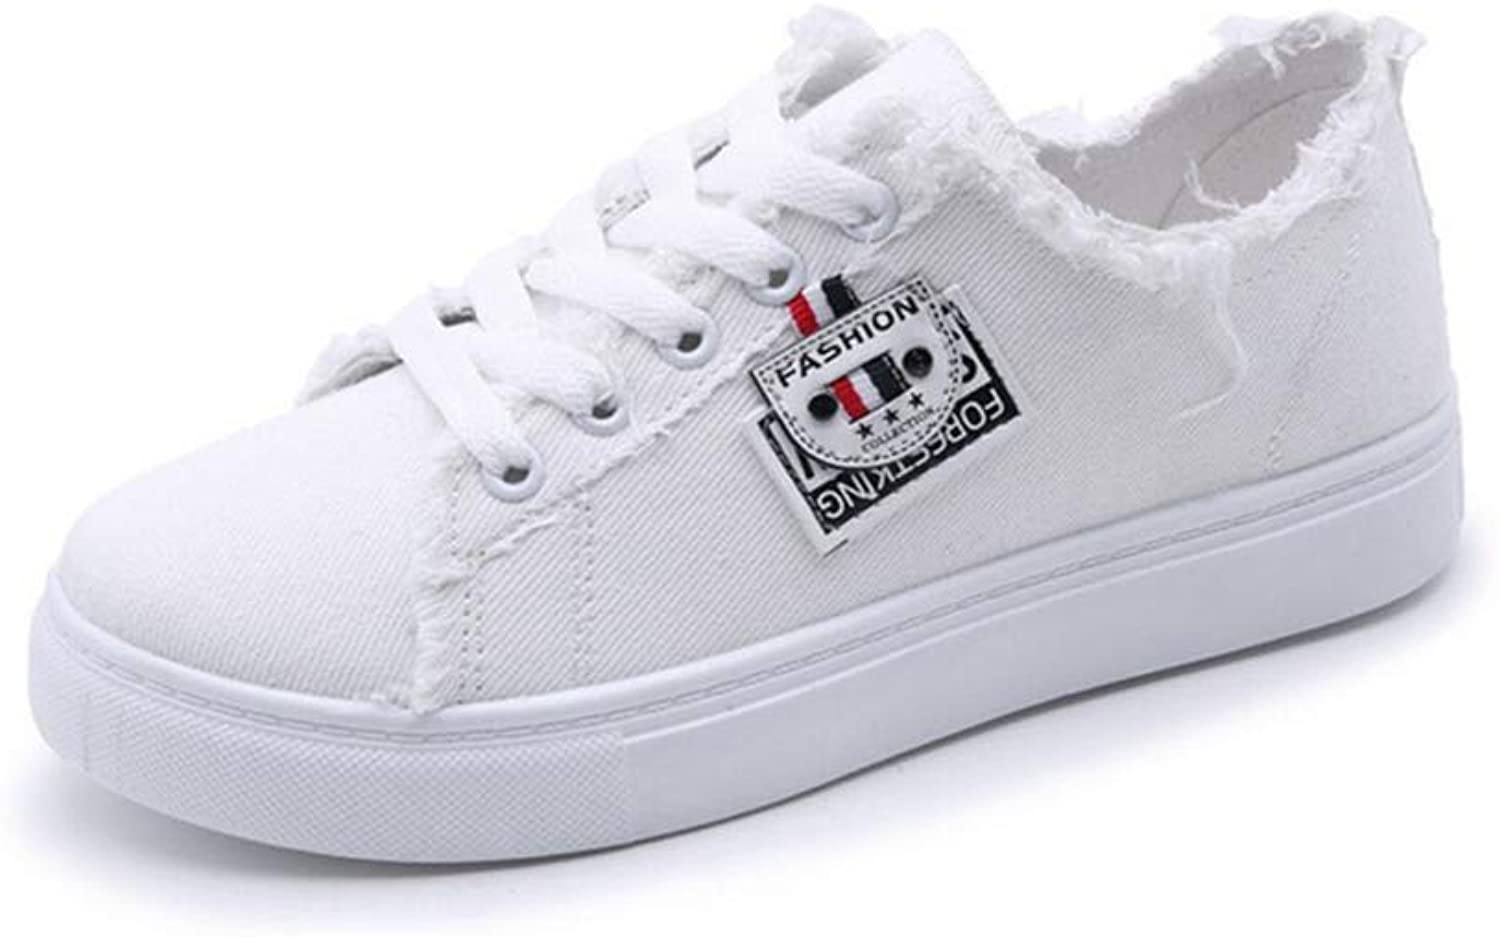 Canvas Sneakers for Women Casual shoes Low Top Lace up Fashion Sneakers